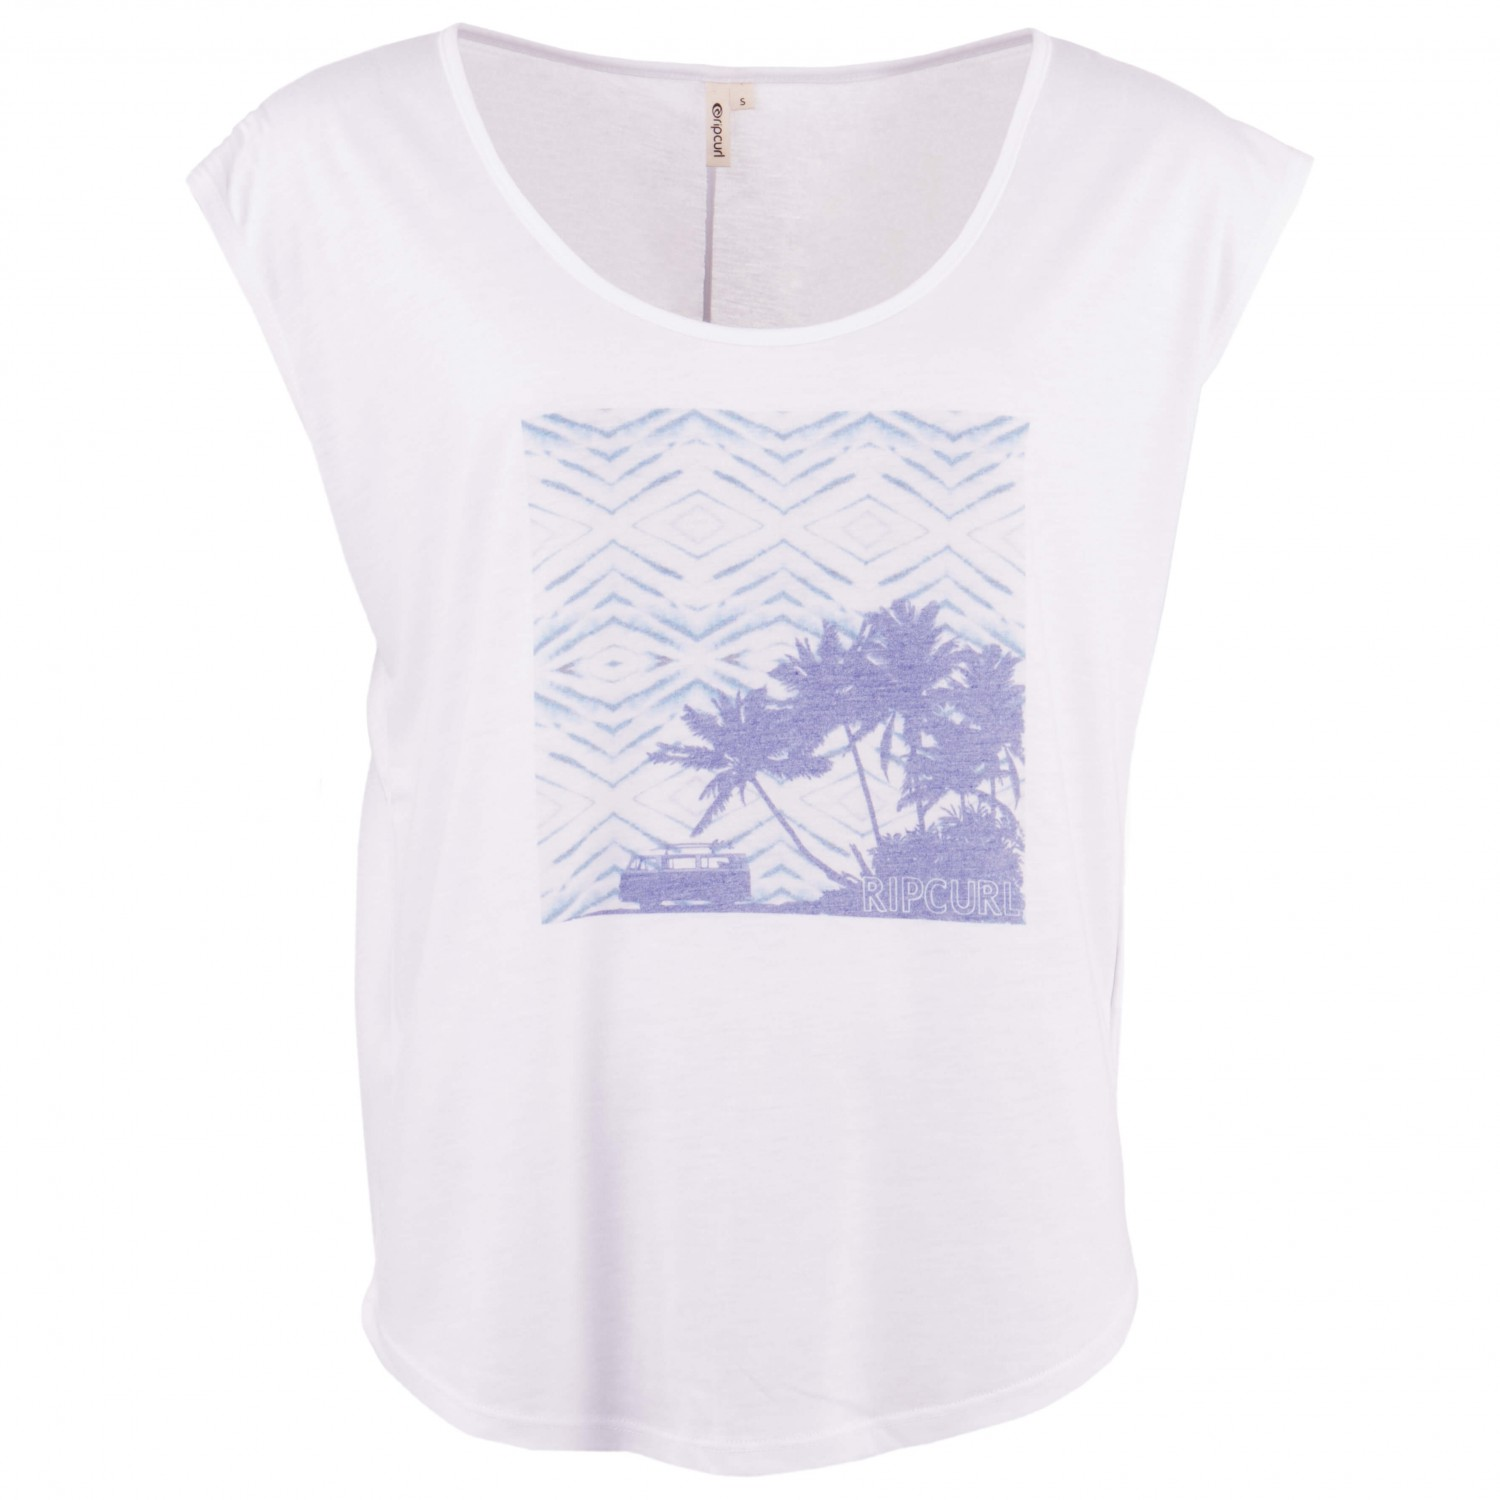 ff697375dde5 Summer T Shirts Online For Womens